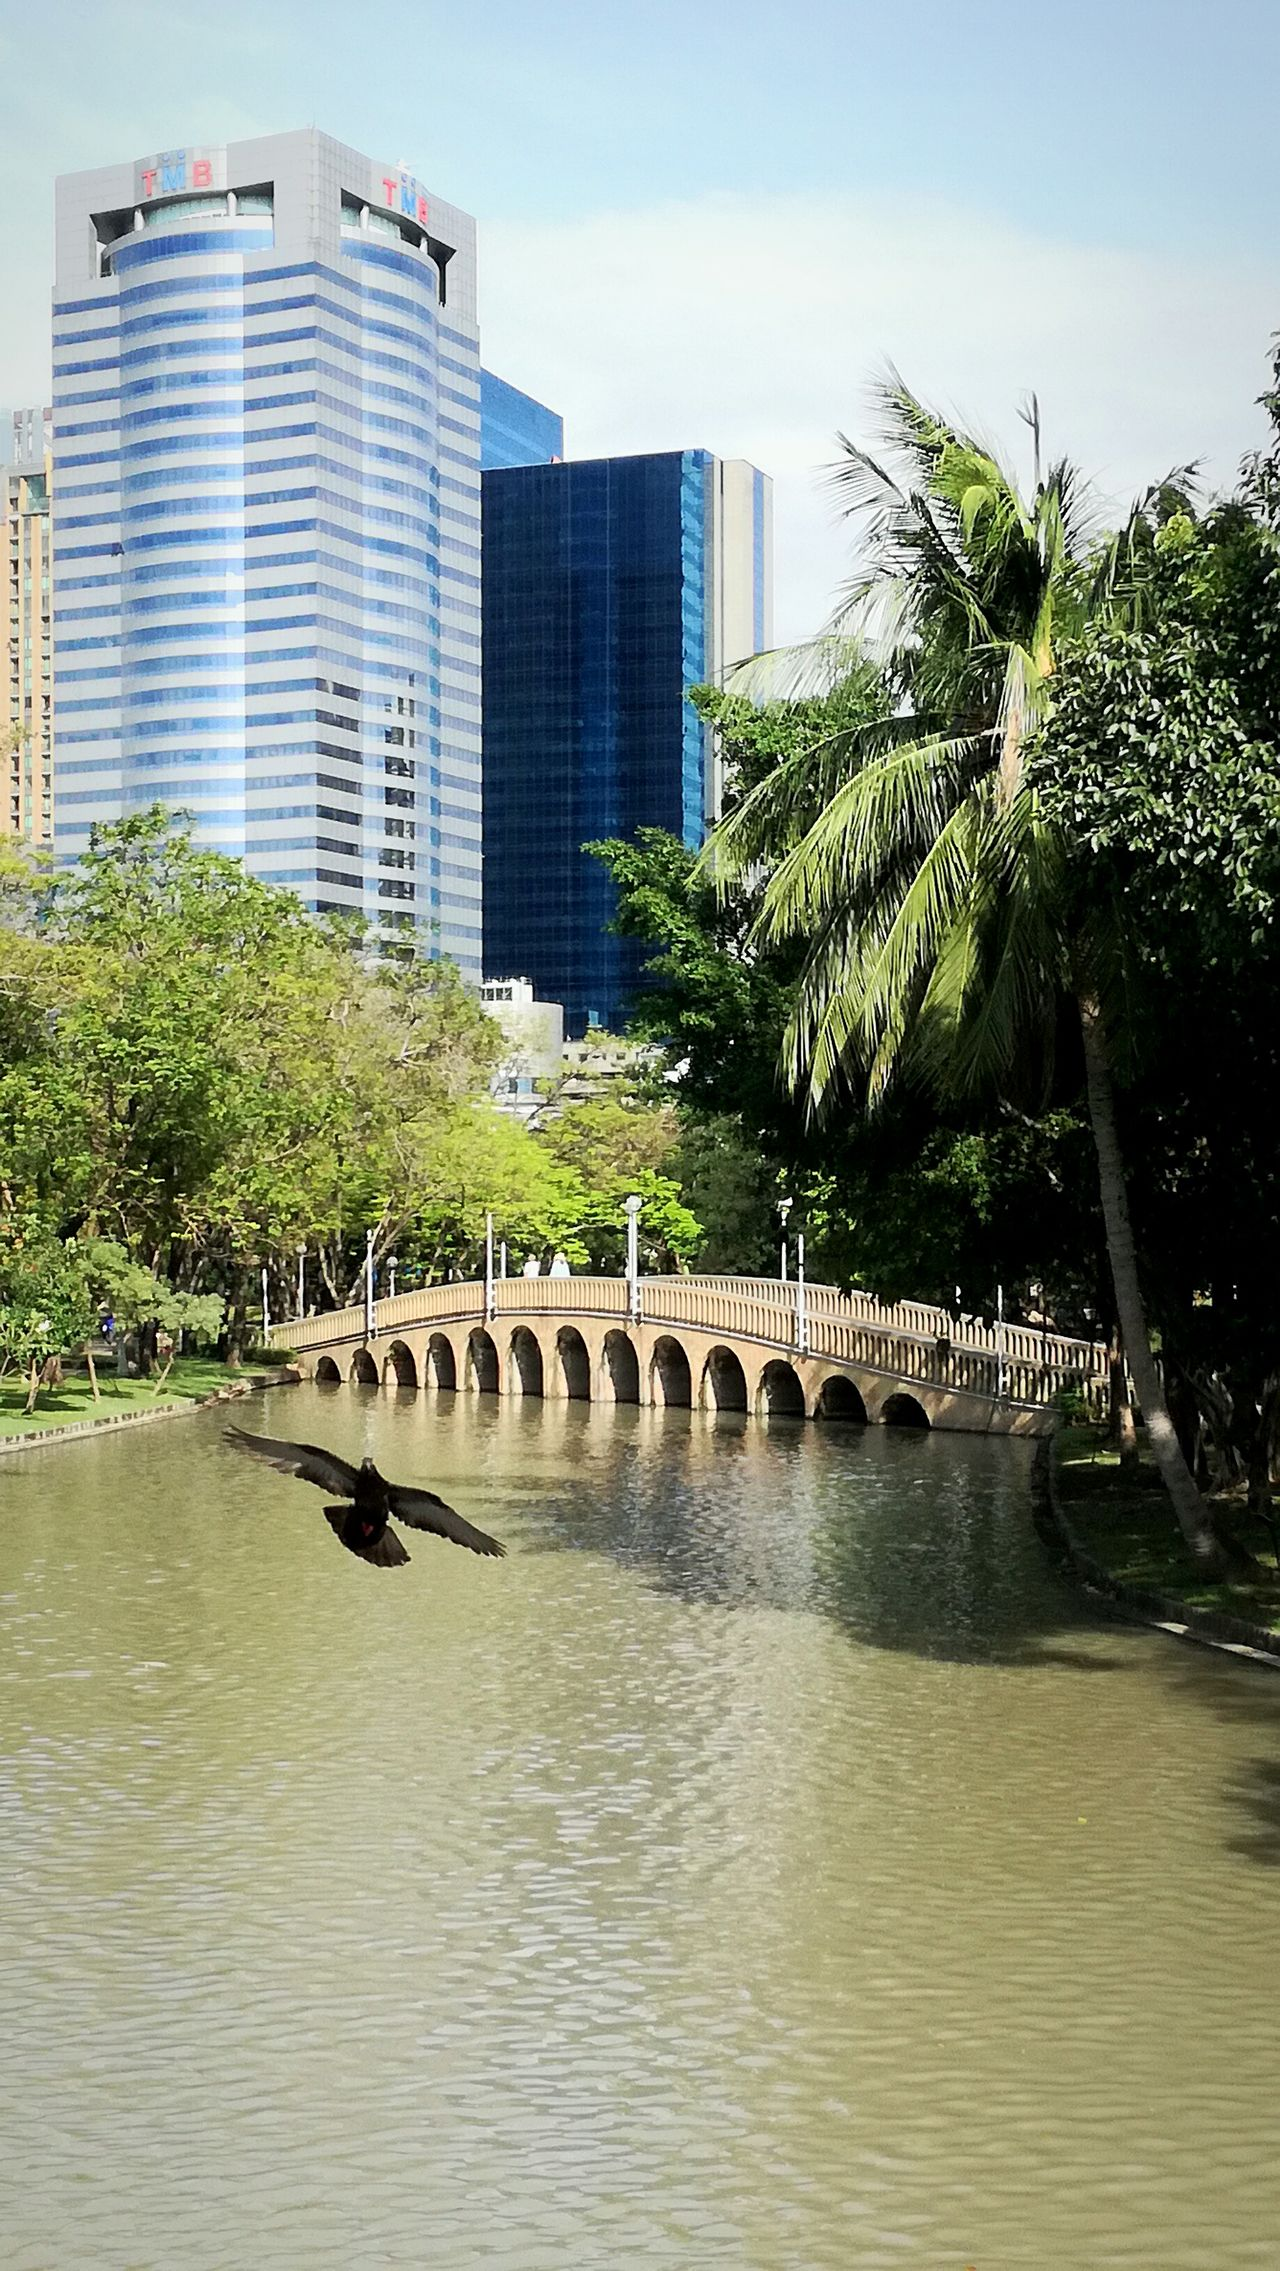 Bangkok Streetphotography EyeEmNewHere Bird Photography Bird In Flight Park View Nature Wildlife And Nature Nature In The City Palm Tree Fly High Freedom Beautiful Day